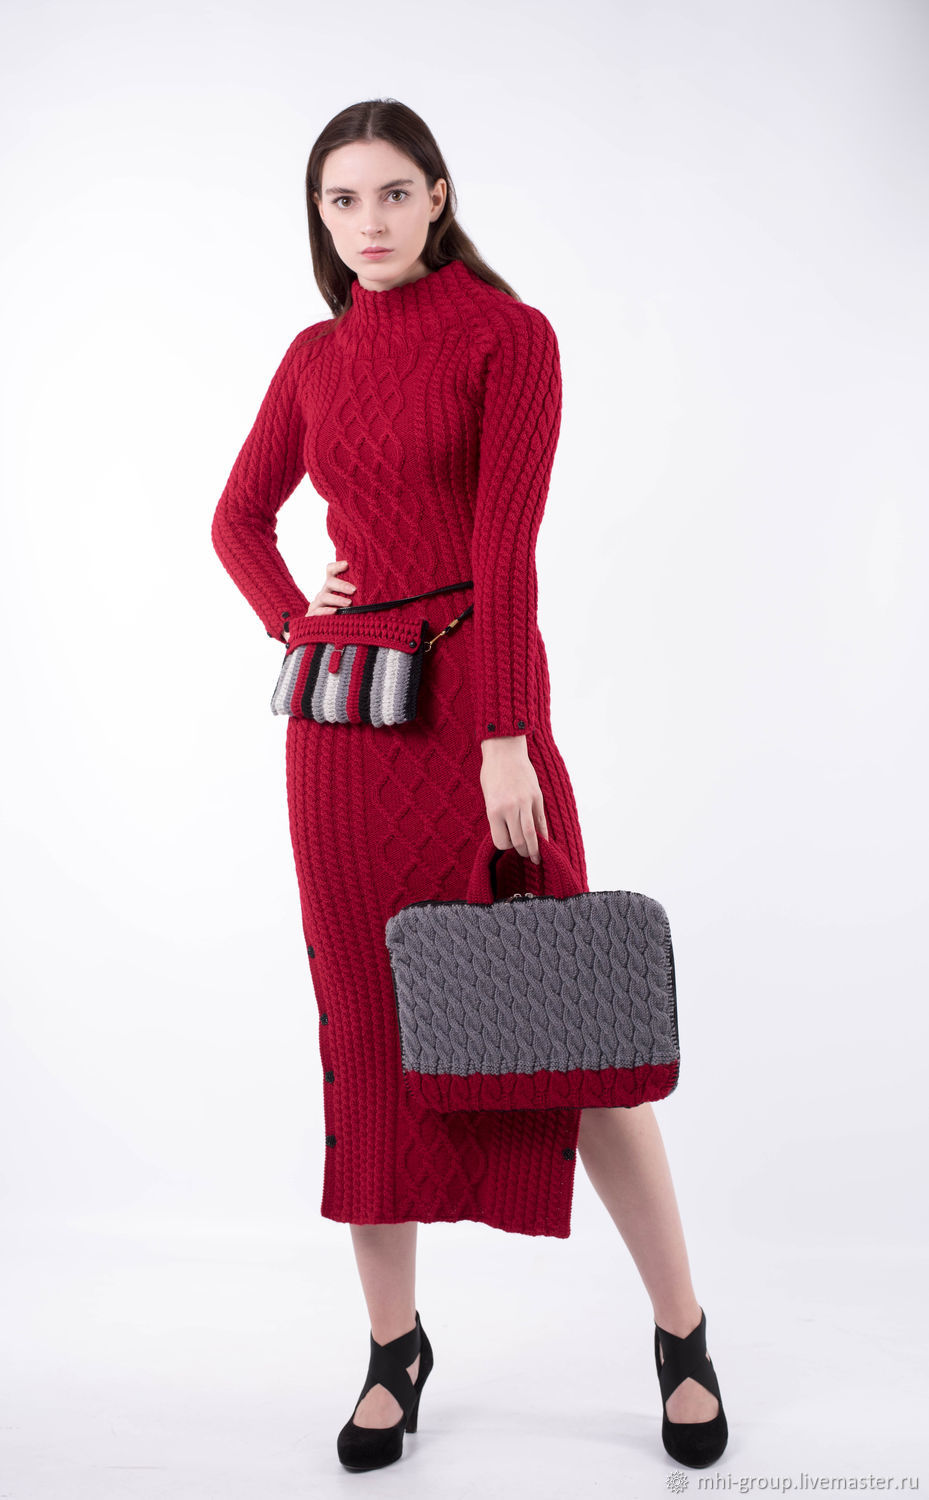 Knitted dress with slits on the sides (on the buttons) of 100% smooth wool yarn-Turkish production. Made in the technique of hand knitting, used in finishing the decorative elements.